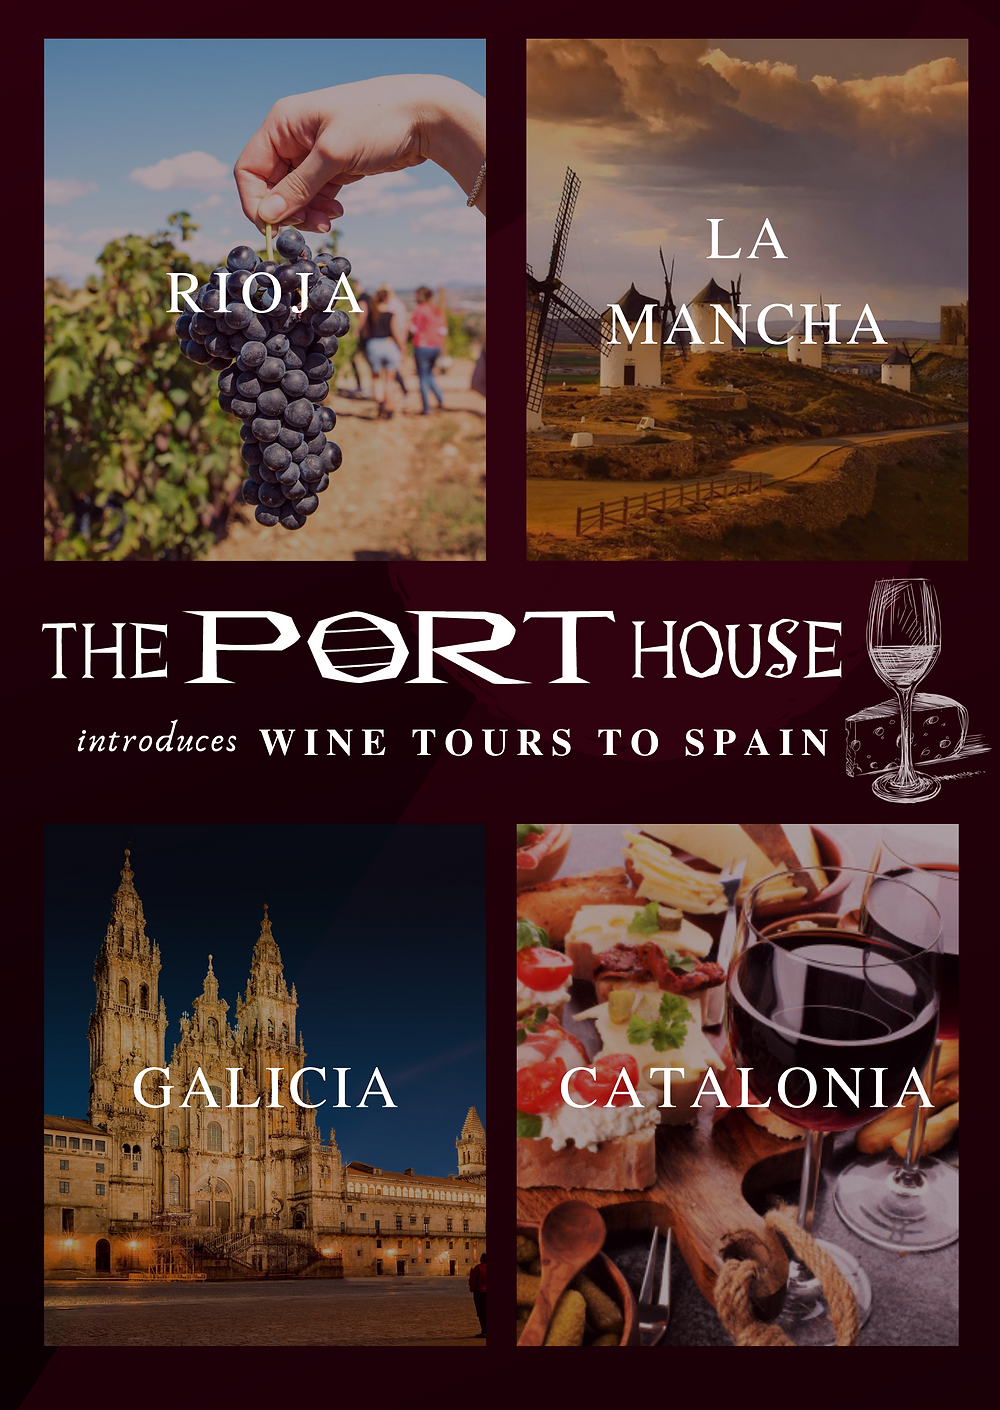 The Port House Wine Tours to Spain